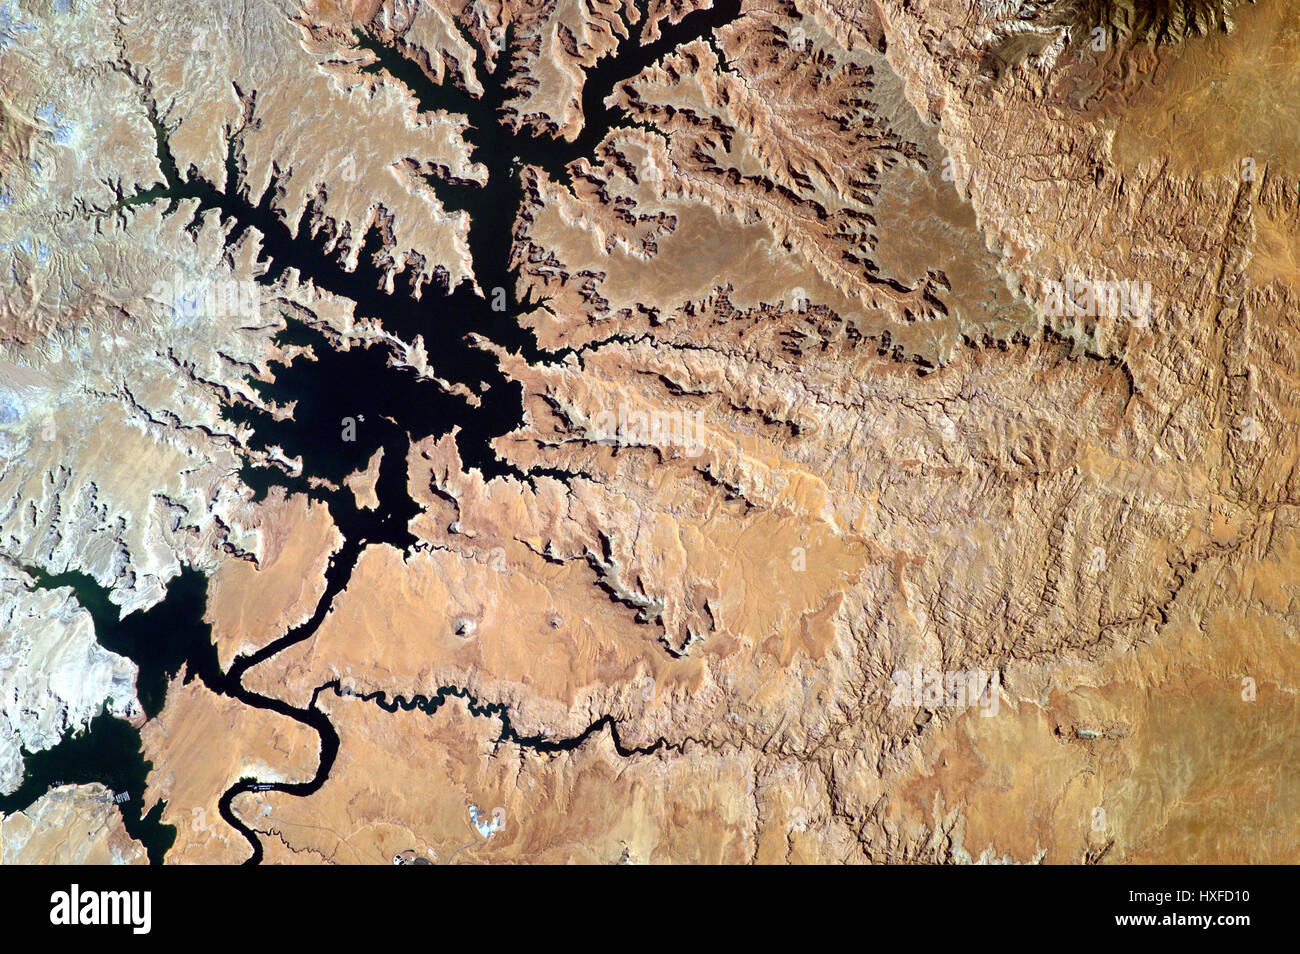 View of lake Powell from the ISS, Arizona and Utah Border. - Stock Image